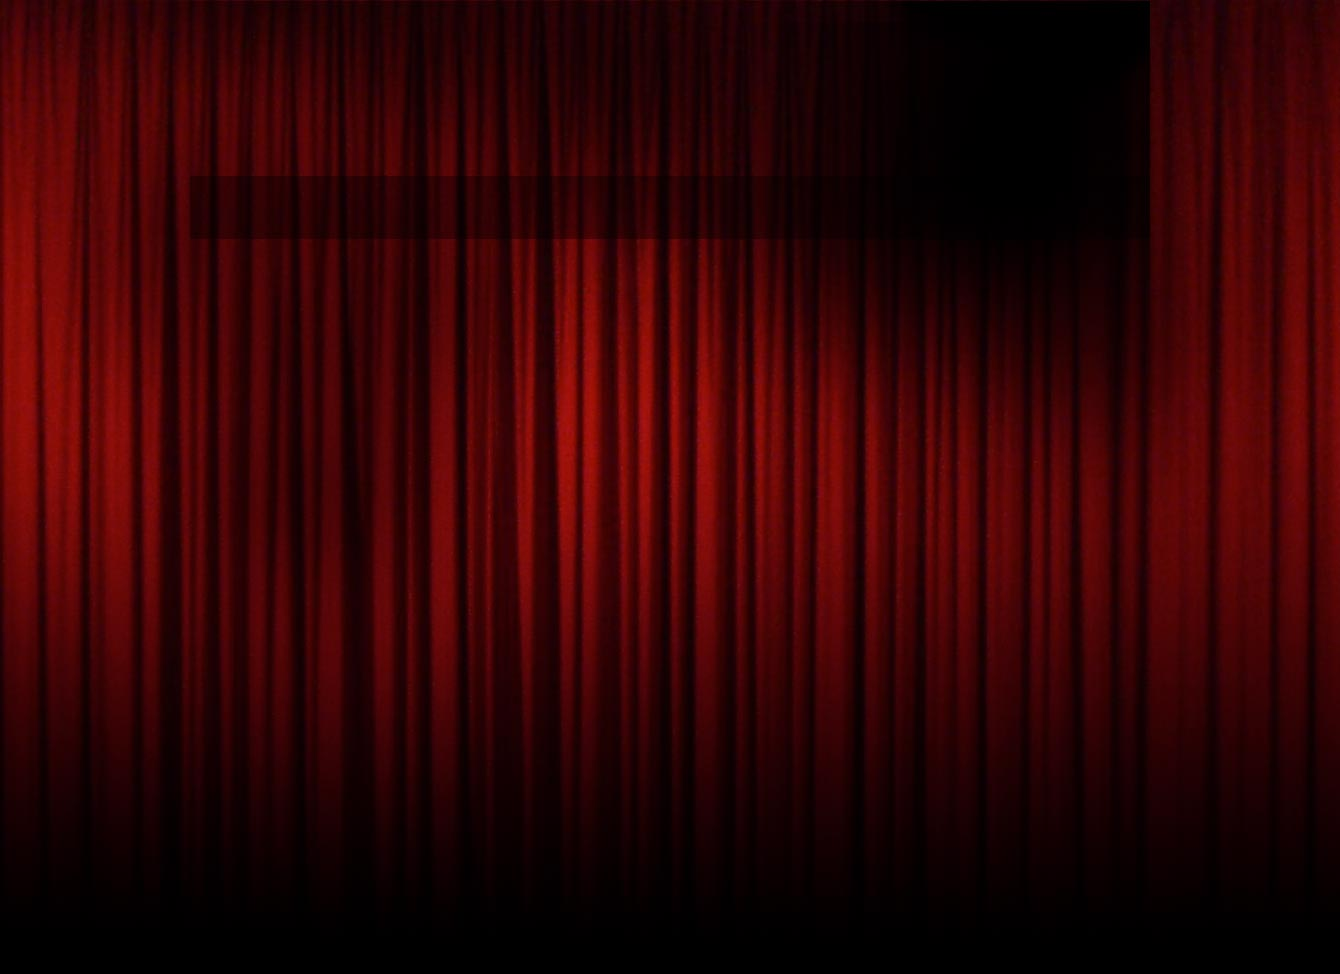 theatre wallpaper wallpapersafari - photo #15